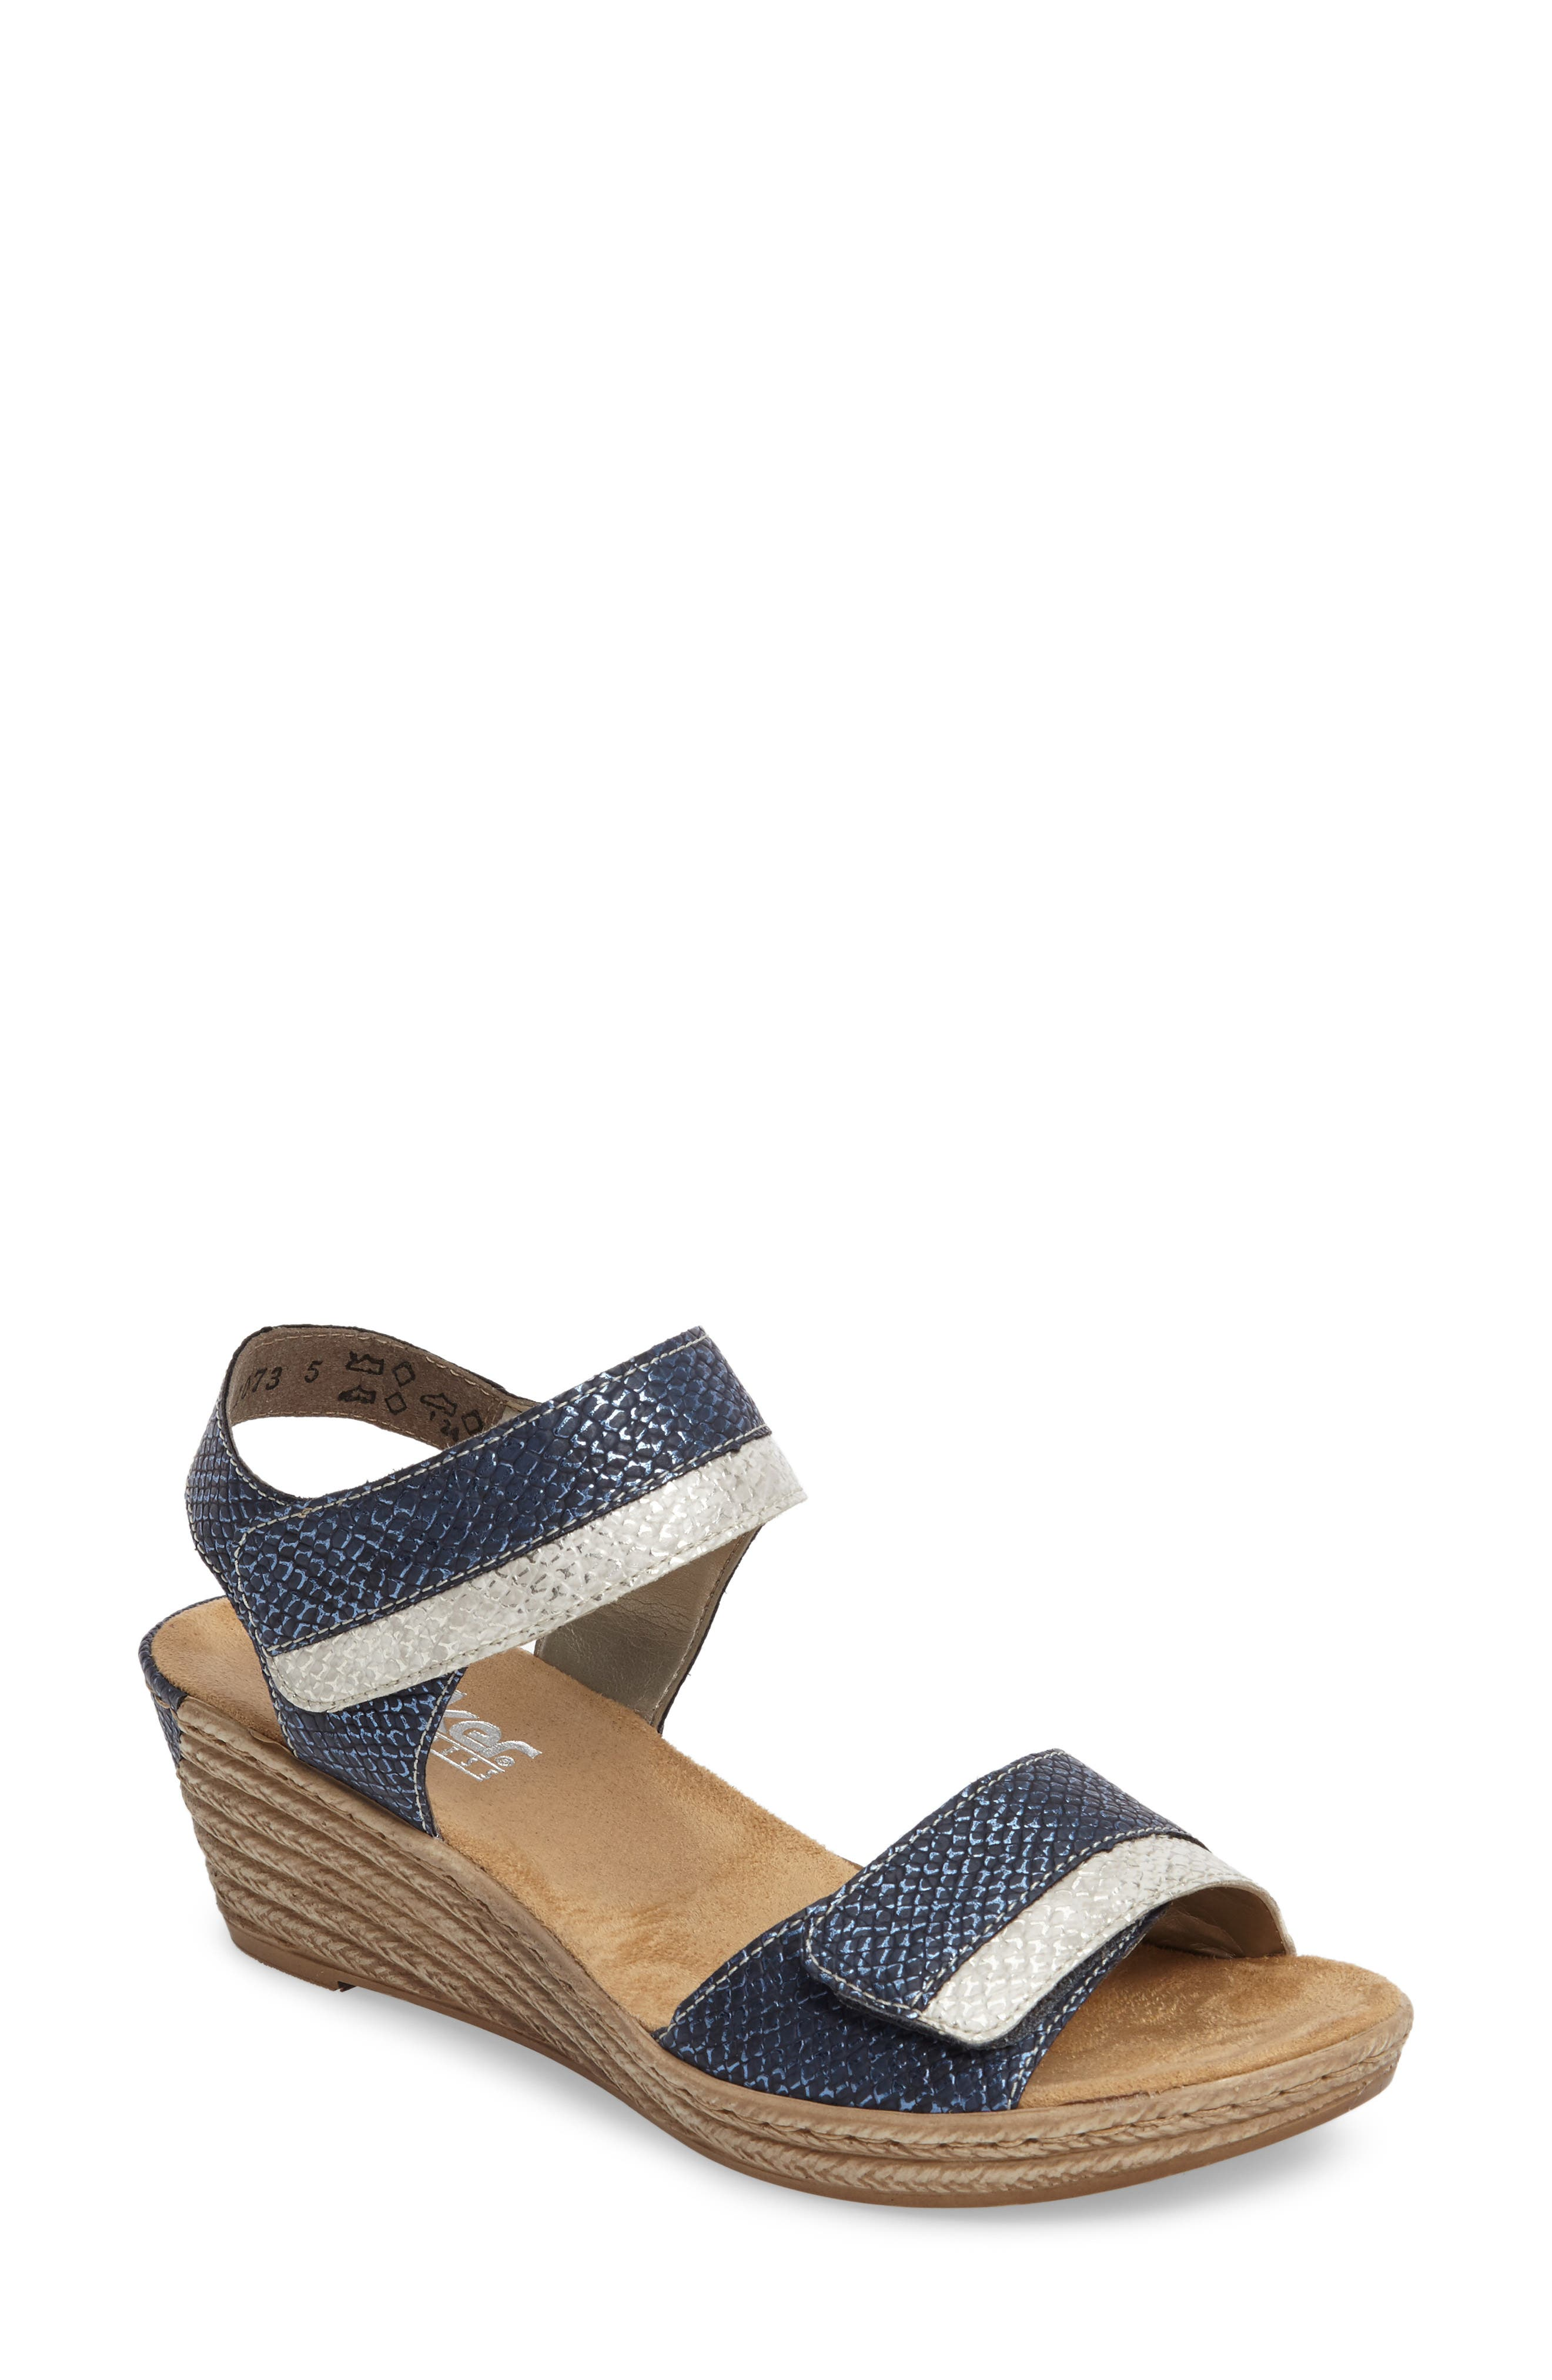 Alternate Image 1 Selected - Rieker Antistress Fanni 70 Wedge Sandal (Women)